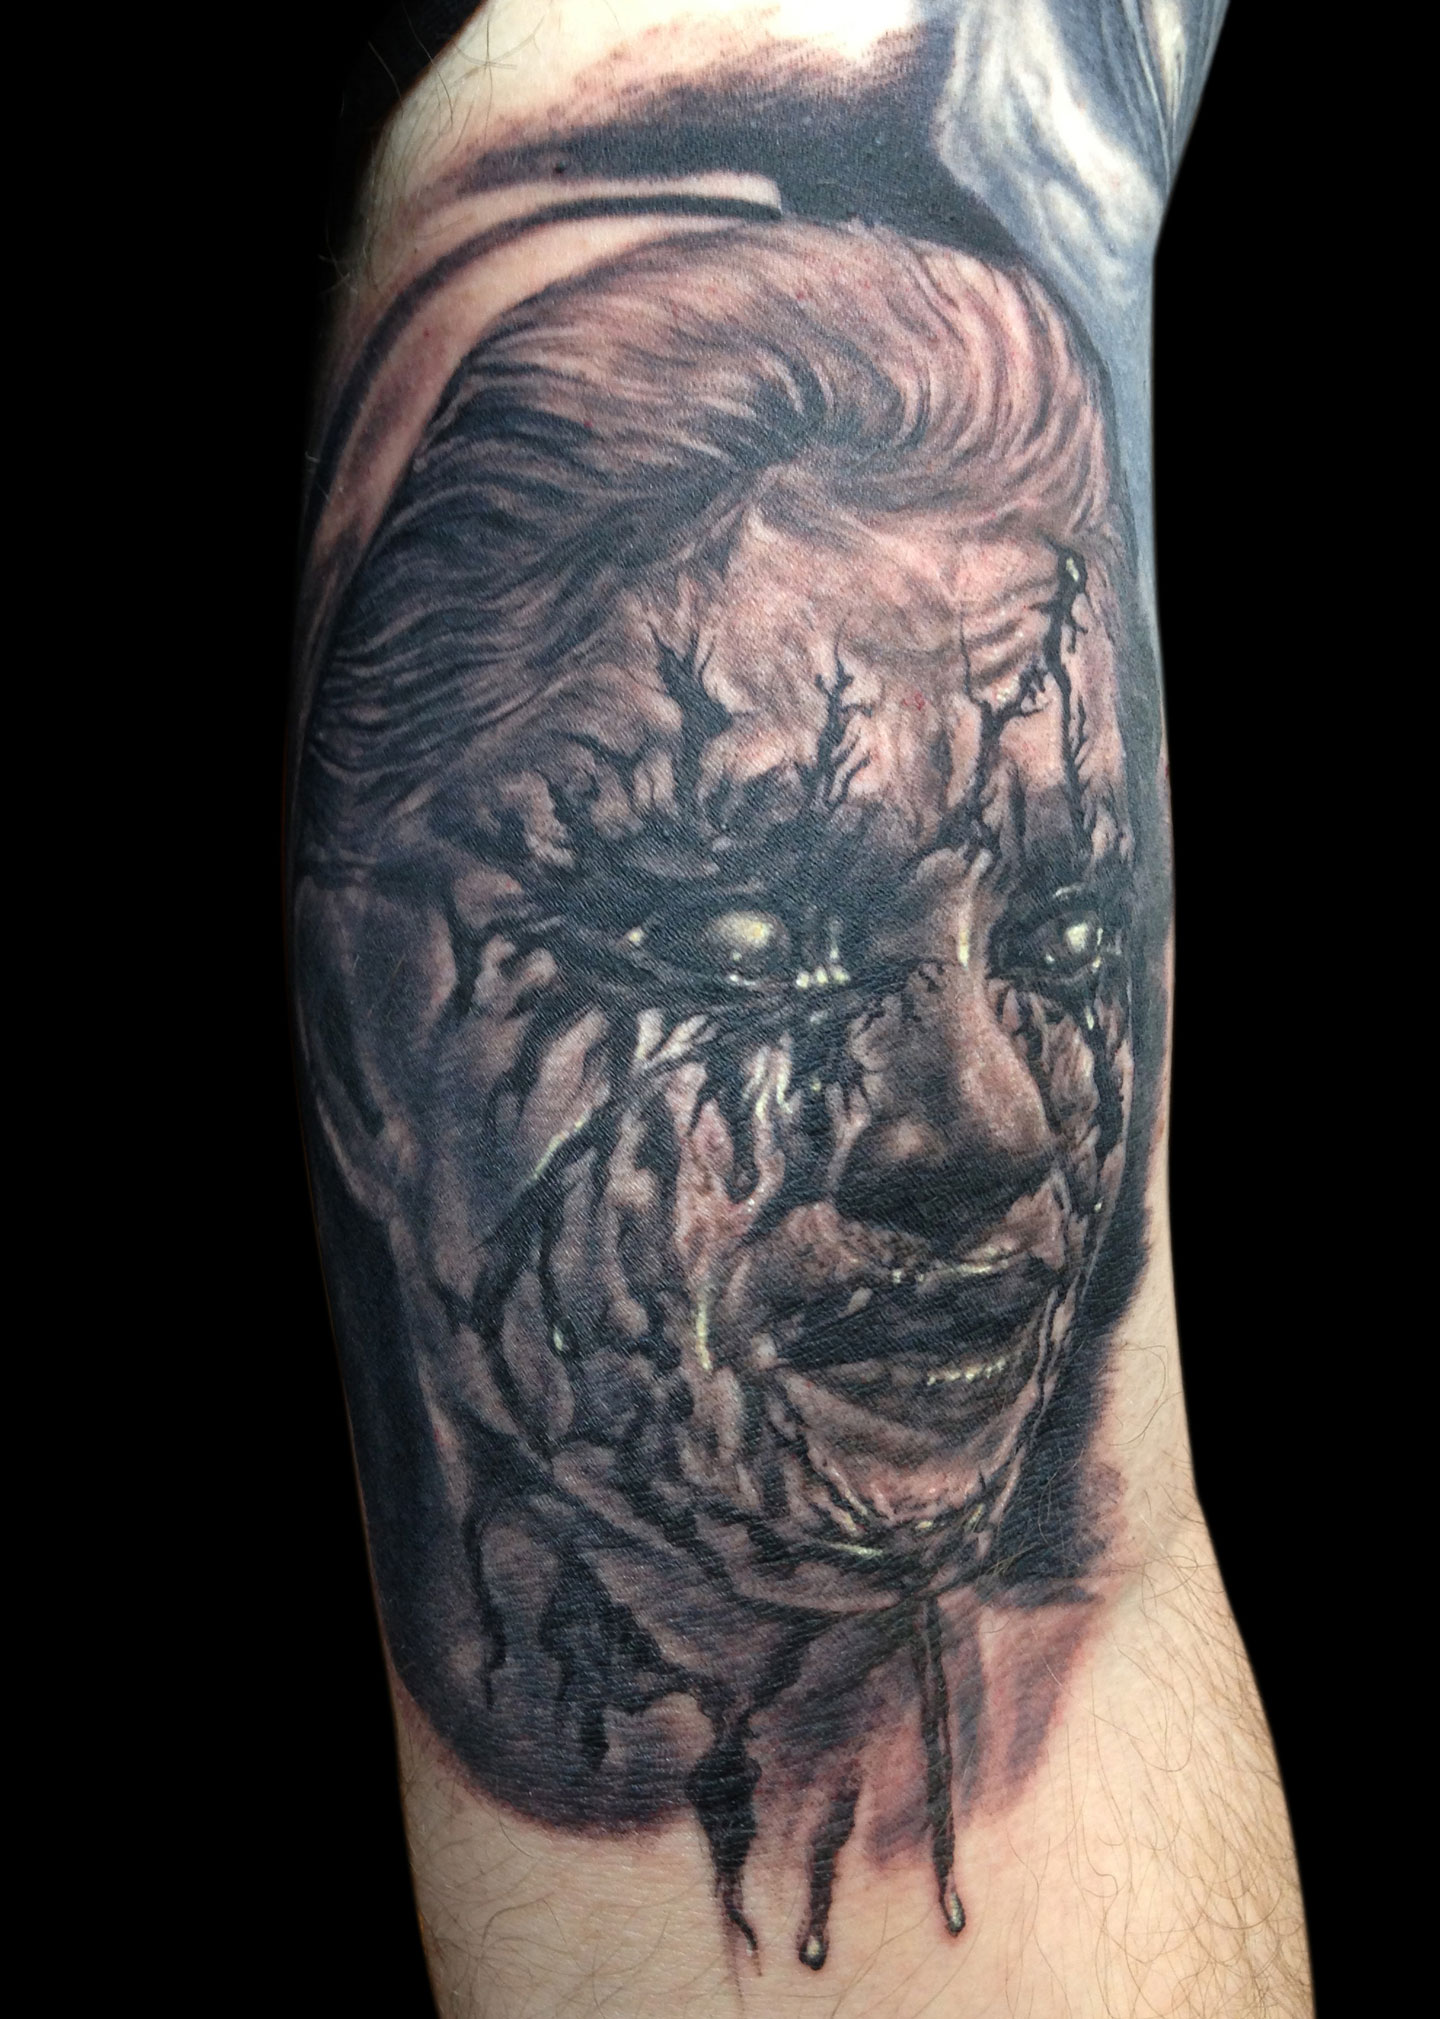 Black and Grey Bloody Nurse Horror Portrait Tattoo, (fresh) Le Mondial du Tatouage Convention, Paris, France